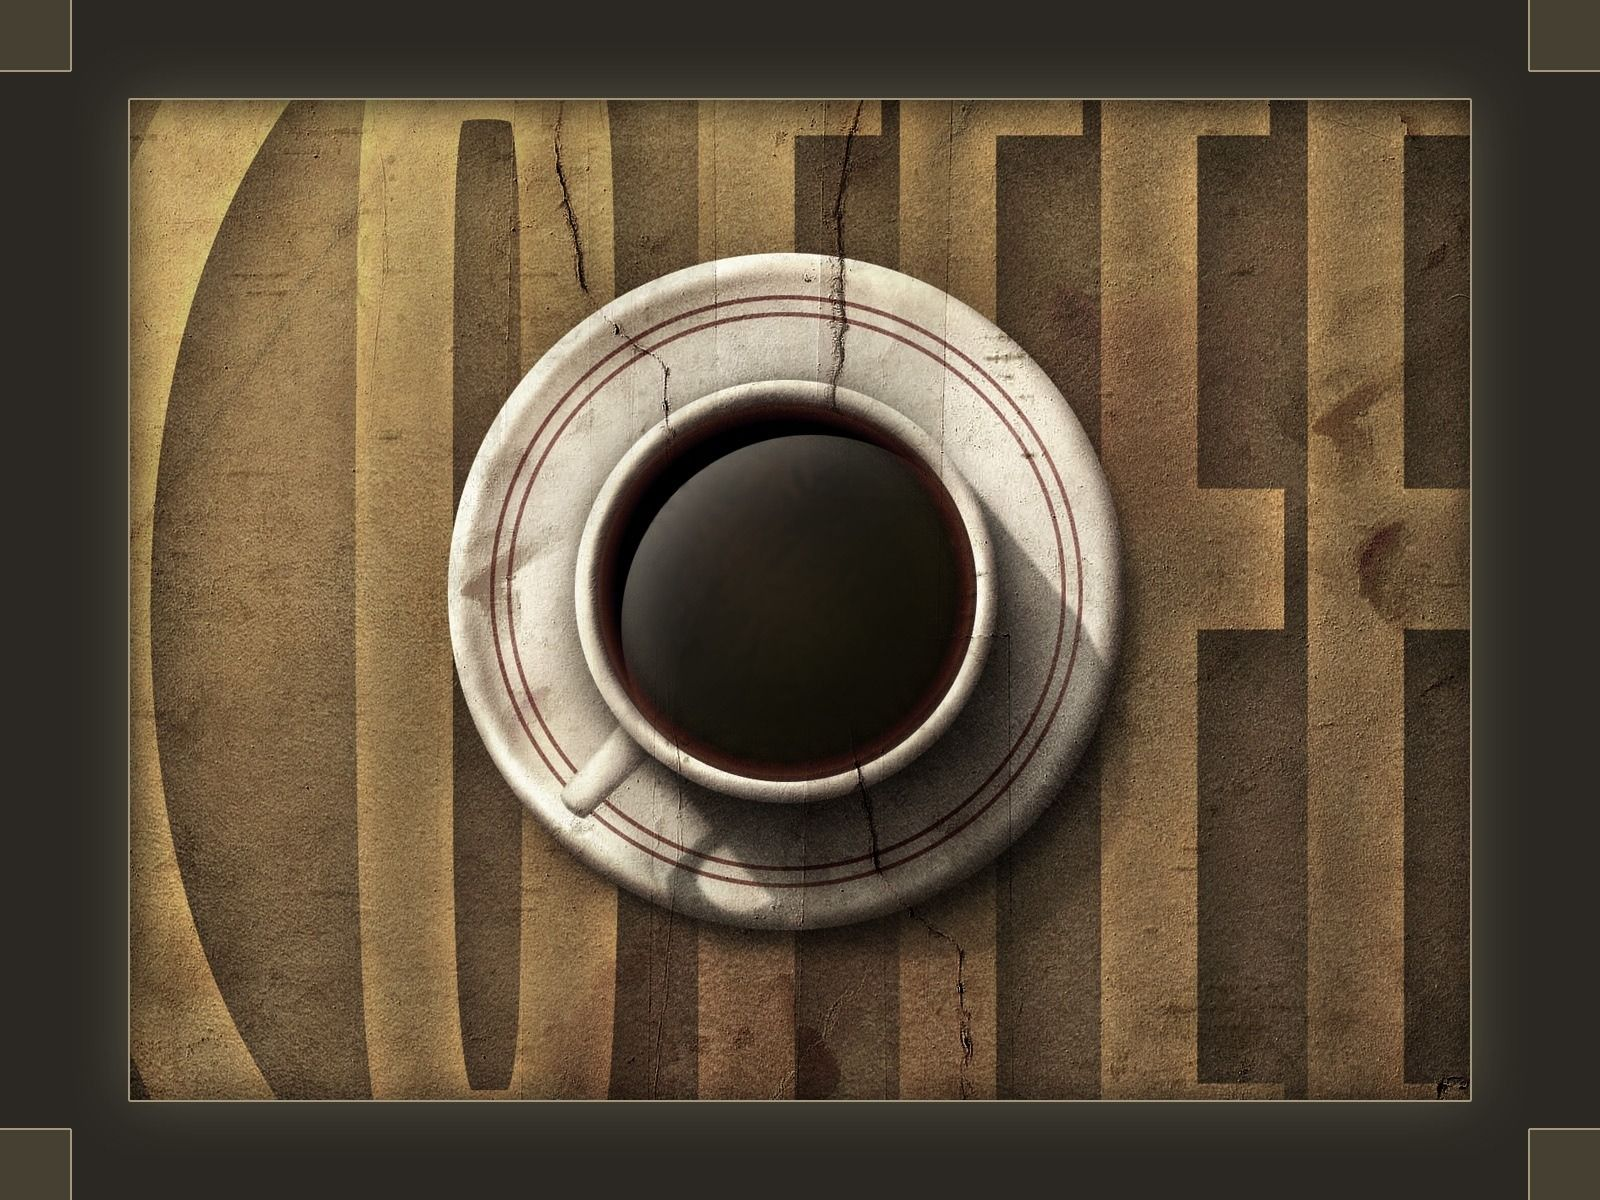 Coffee Designs Wallpapers Cup Design Wallpaper 1600x1200 541 Kb